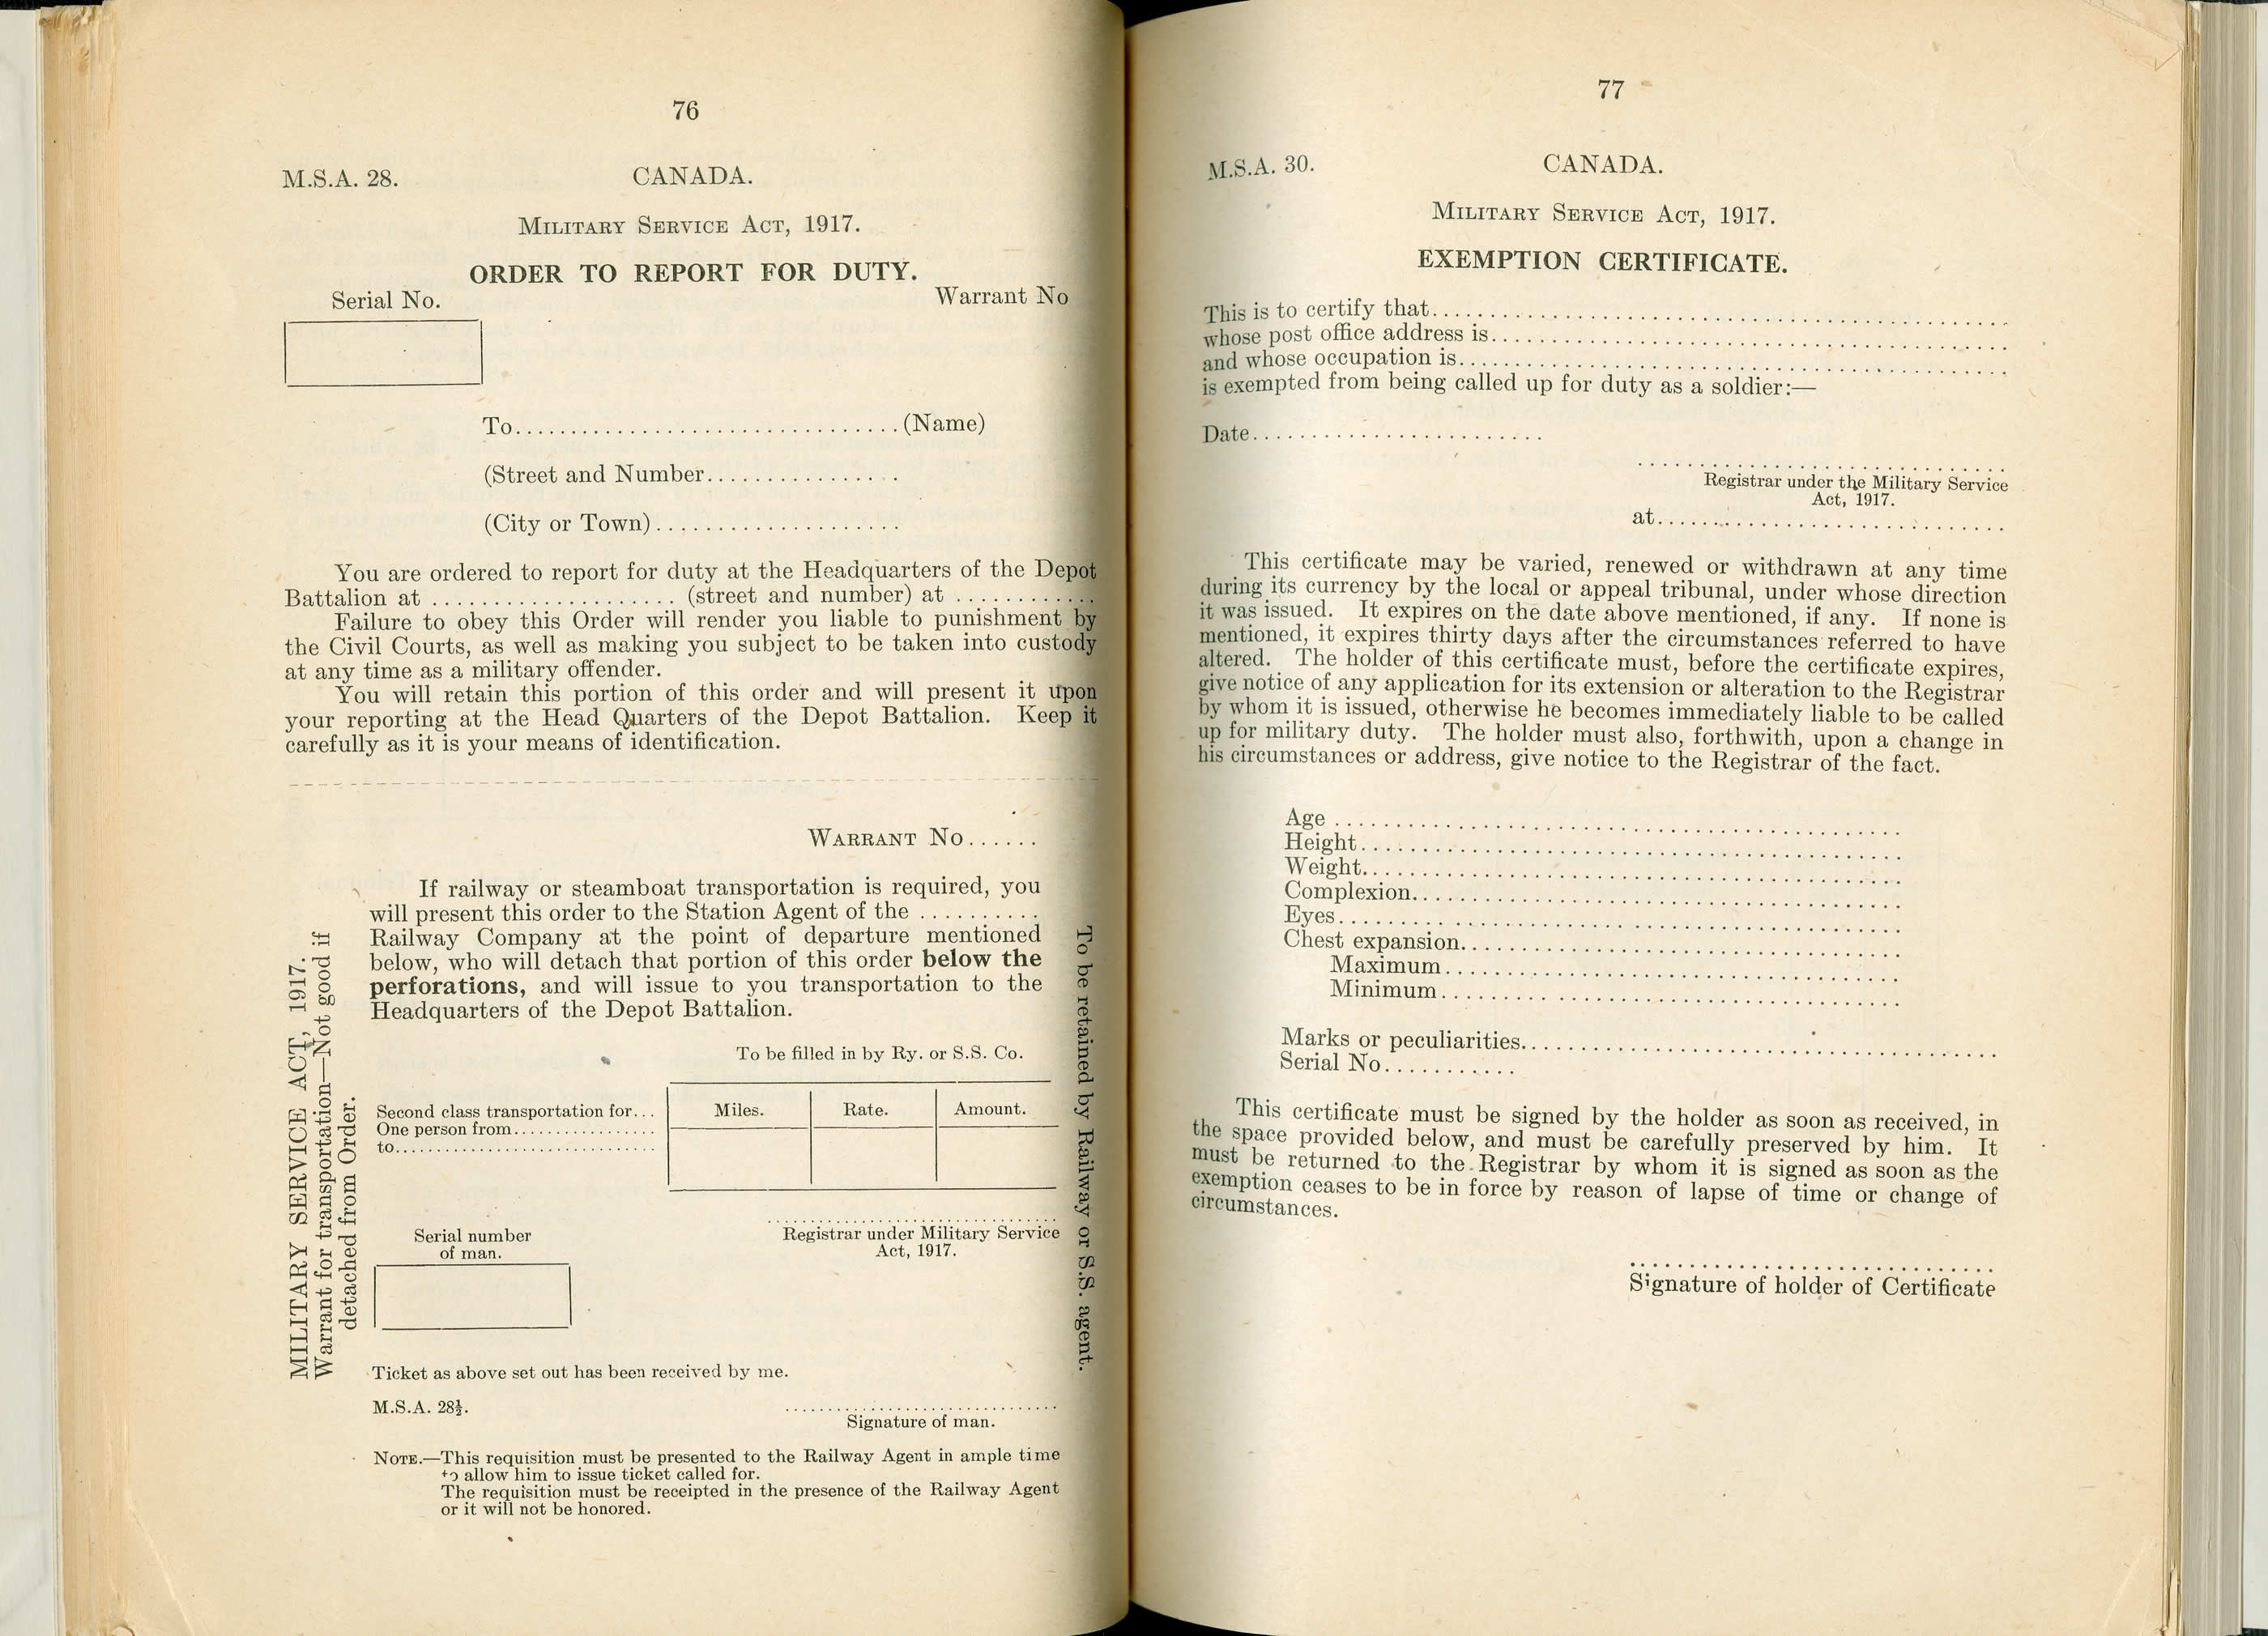 Forms from the Military Service Act Forms from the Military Service Act of 1917.